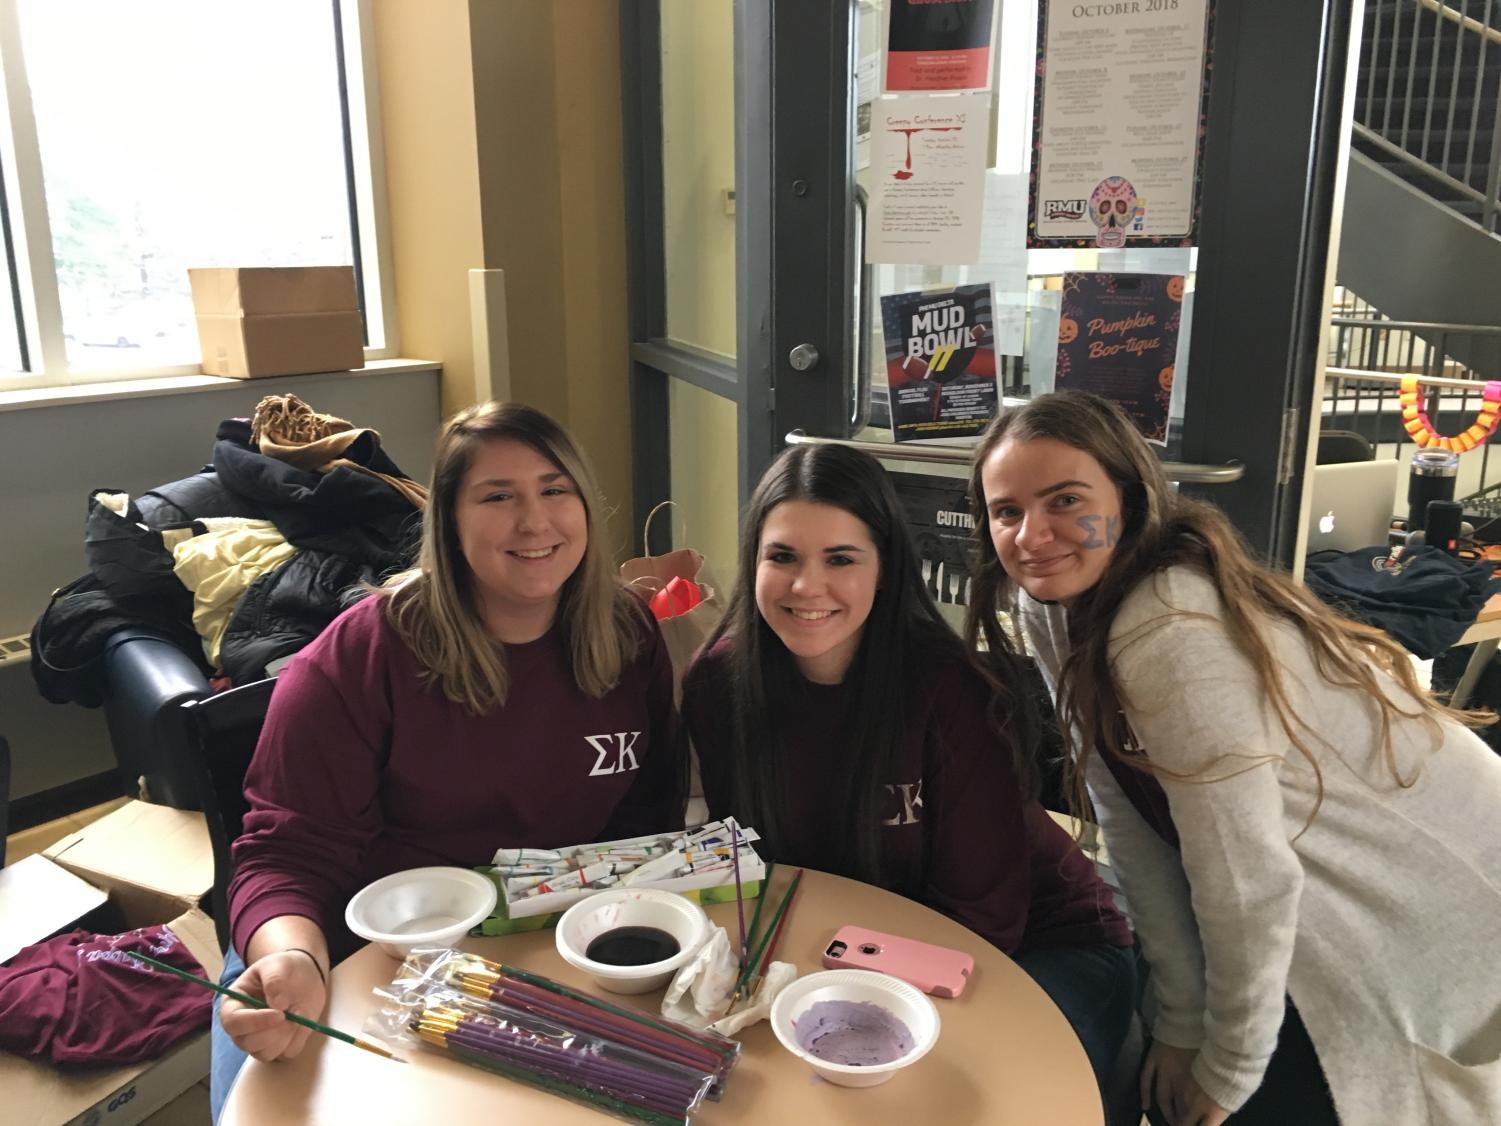 Pictured from left to right: Danielle Brunner, Samantha Wiatrak, Marissa Bryan. October 27, 2018.